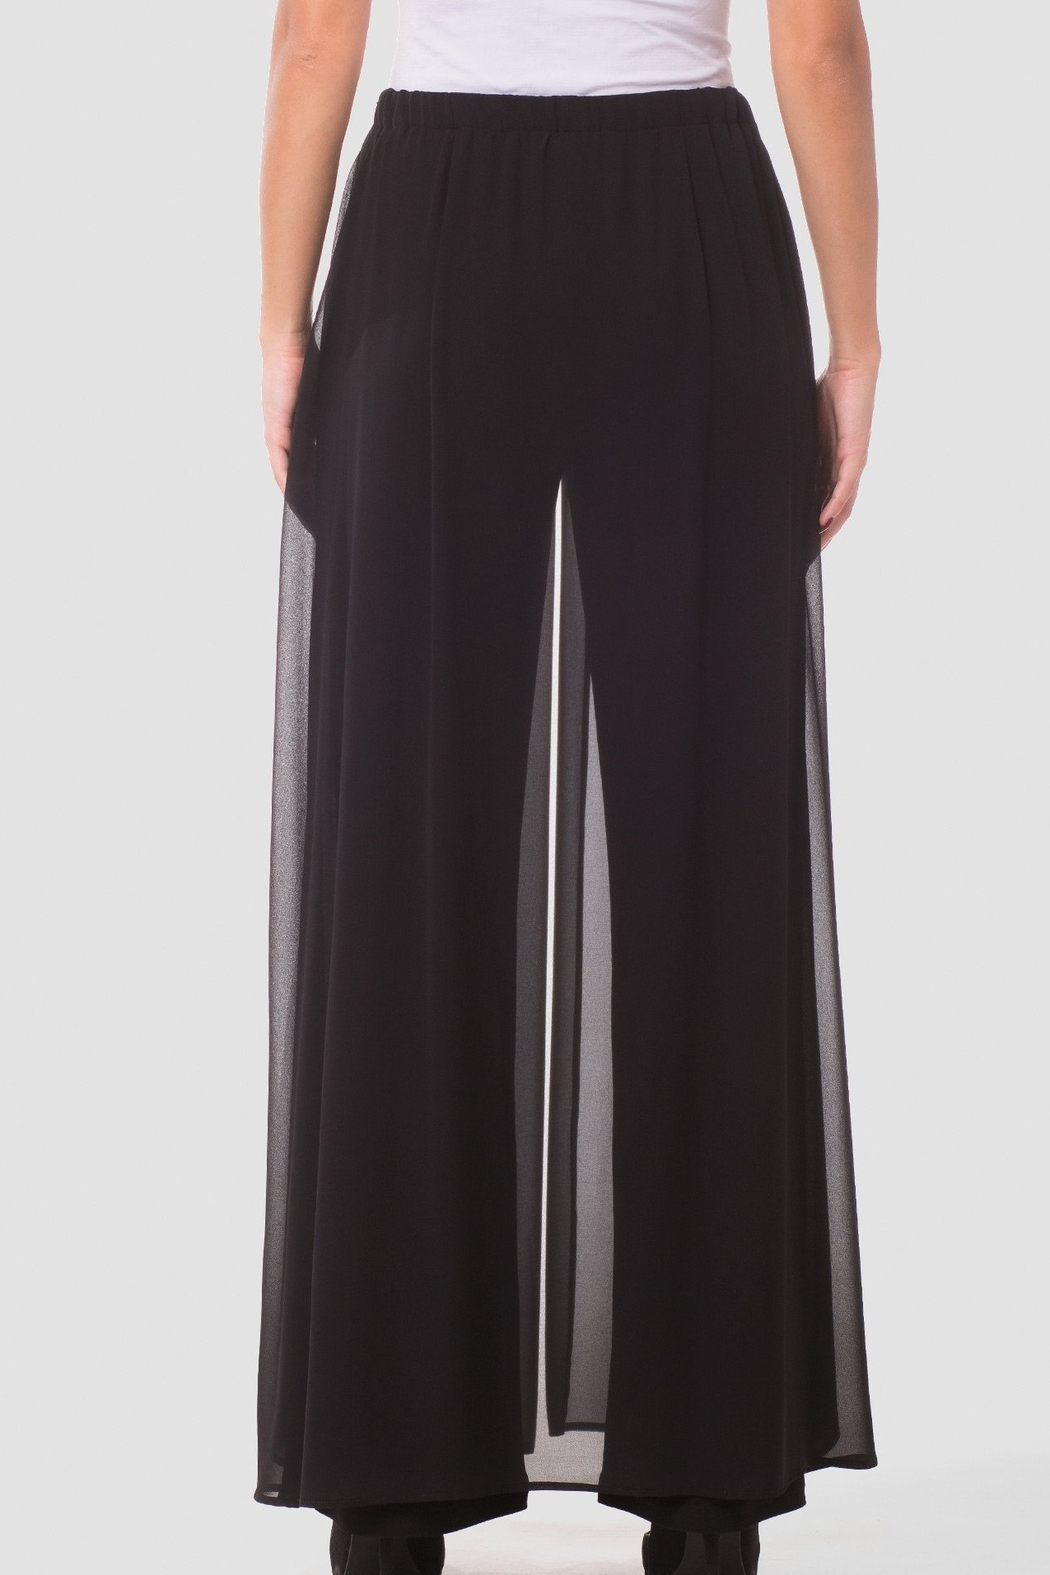 Joseph Ribkoff  Go with the Flow Wide Leg Pants - Side Cropped Image